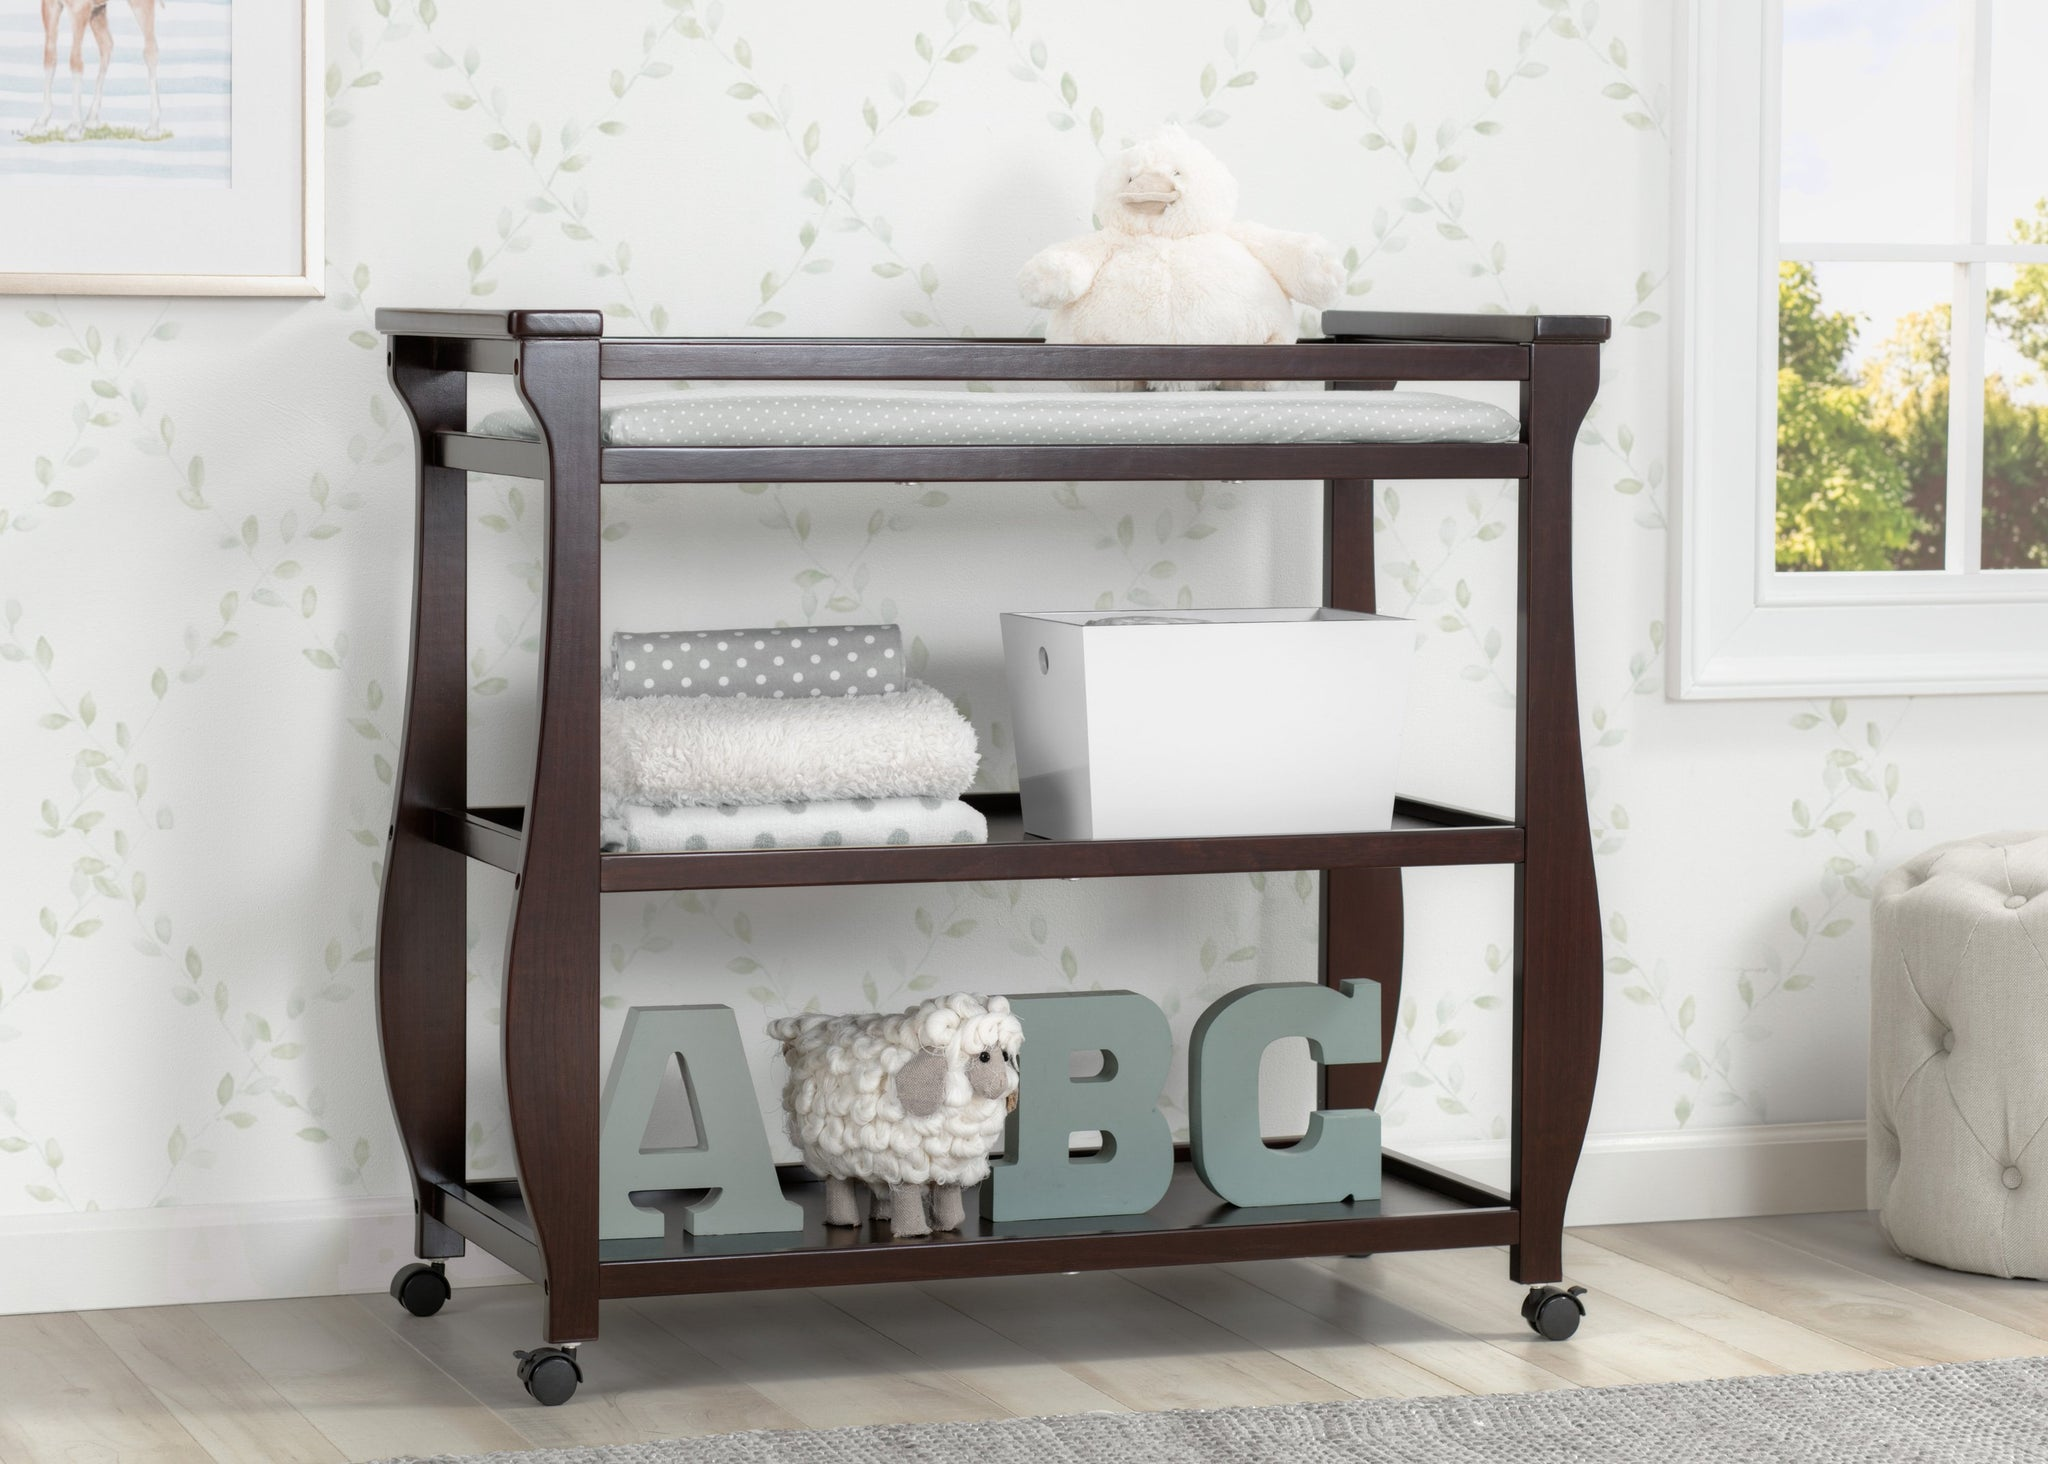 Delta Children Dark Chocolate (207) Lancaster Changing Table (552010), Hangtag, c1c